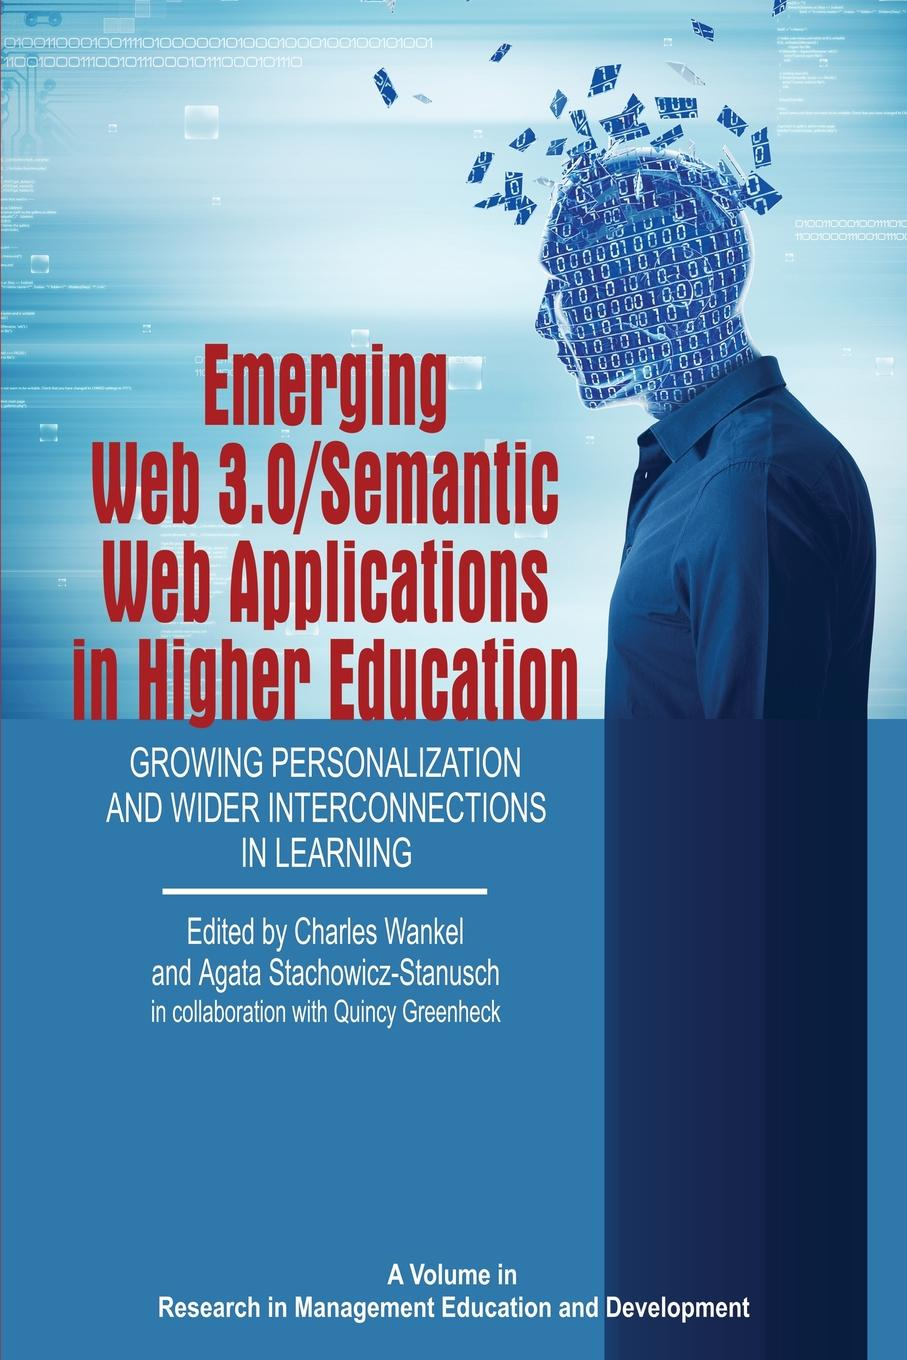 Emerging Web 3.0/ Semantic Web Applications in Higher Education. Growing Personalization and Wider Interconnections in Learning monica patrut and bogdan patrut web 2 0 in education and politics